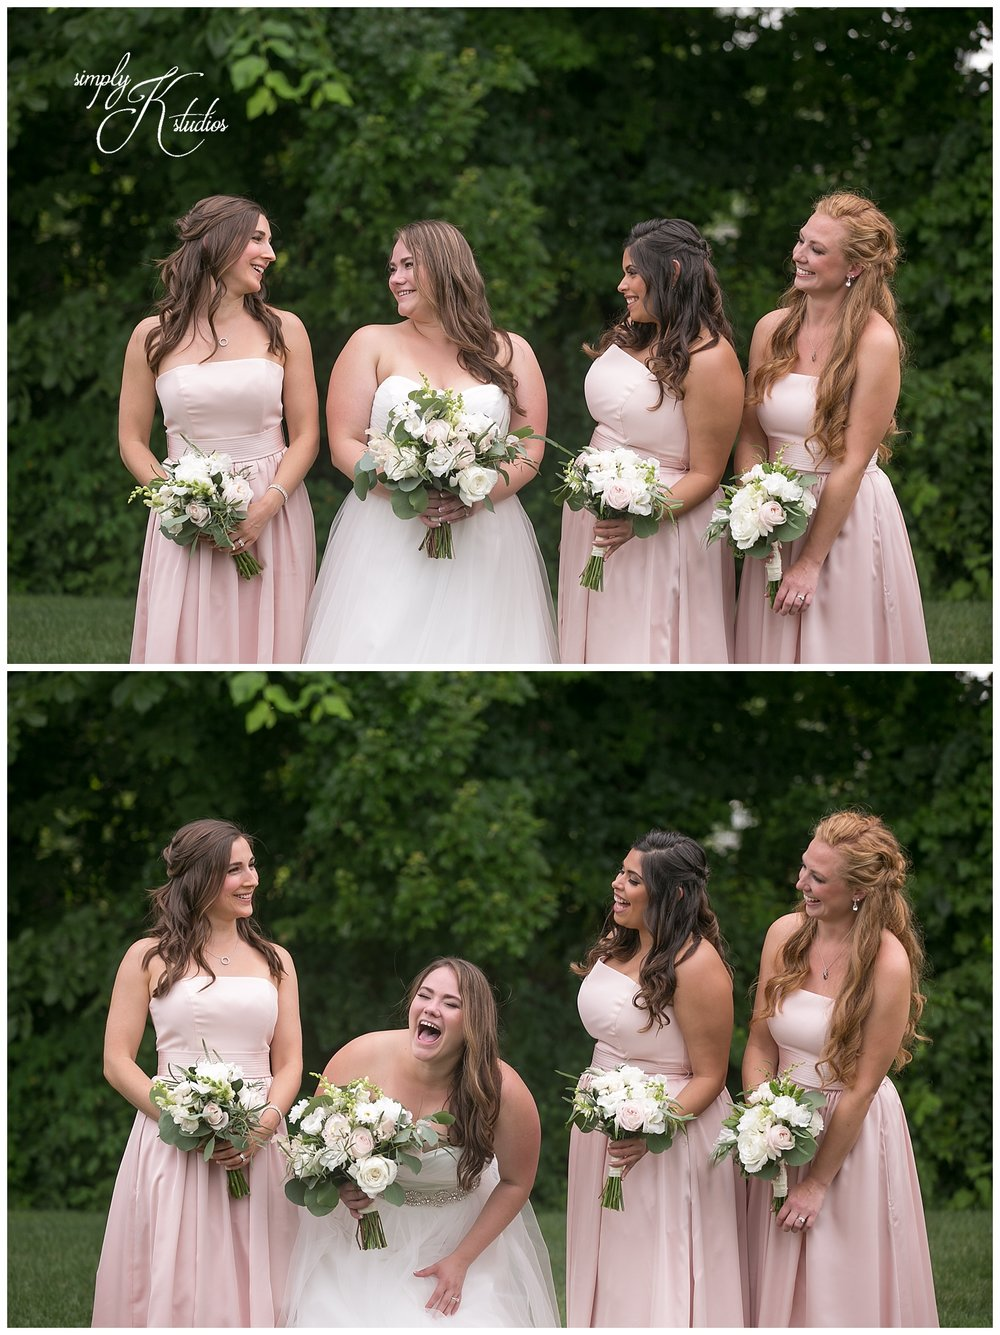 Blush Bridesmaids Dresses from Davids Bridal.jpg